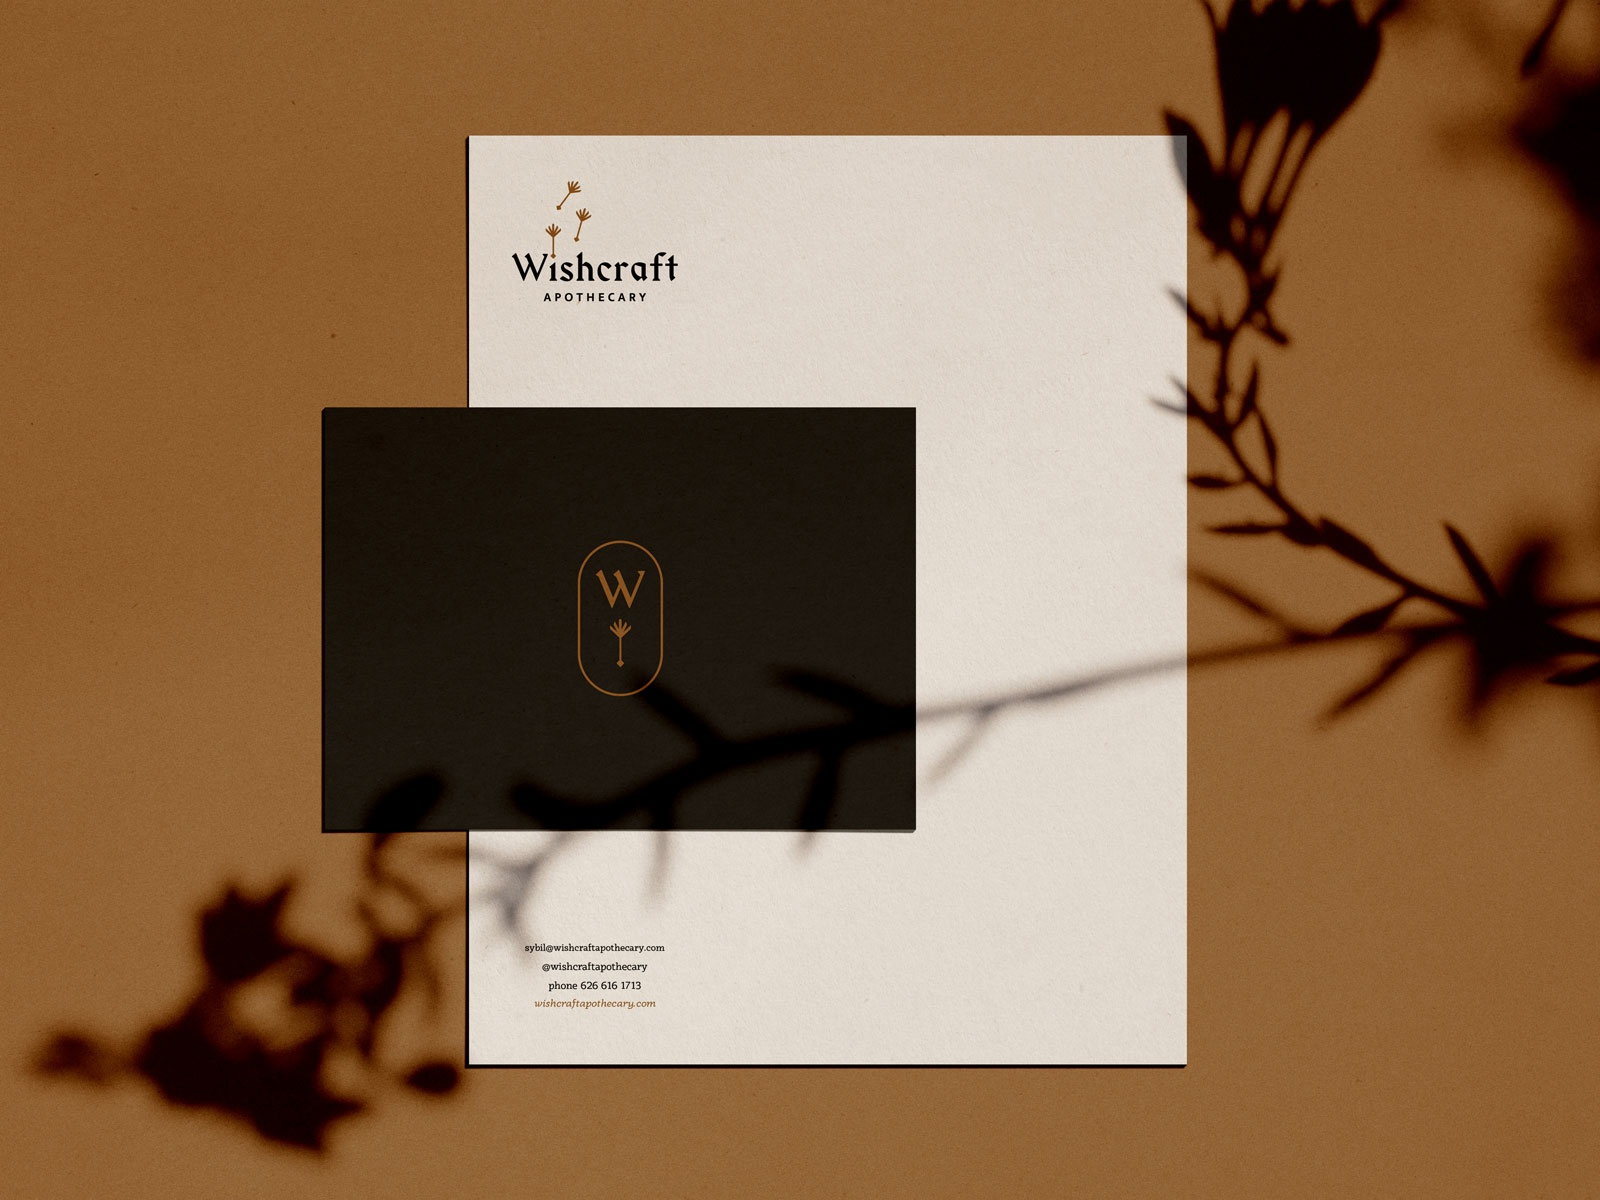 Wishcraft stationery mockup